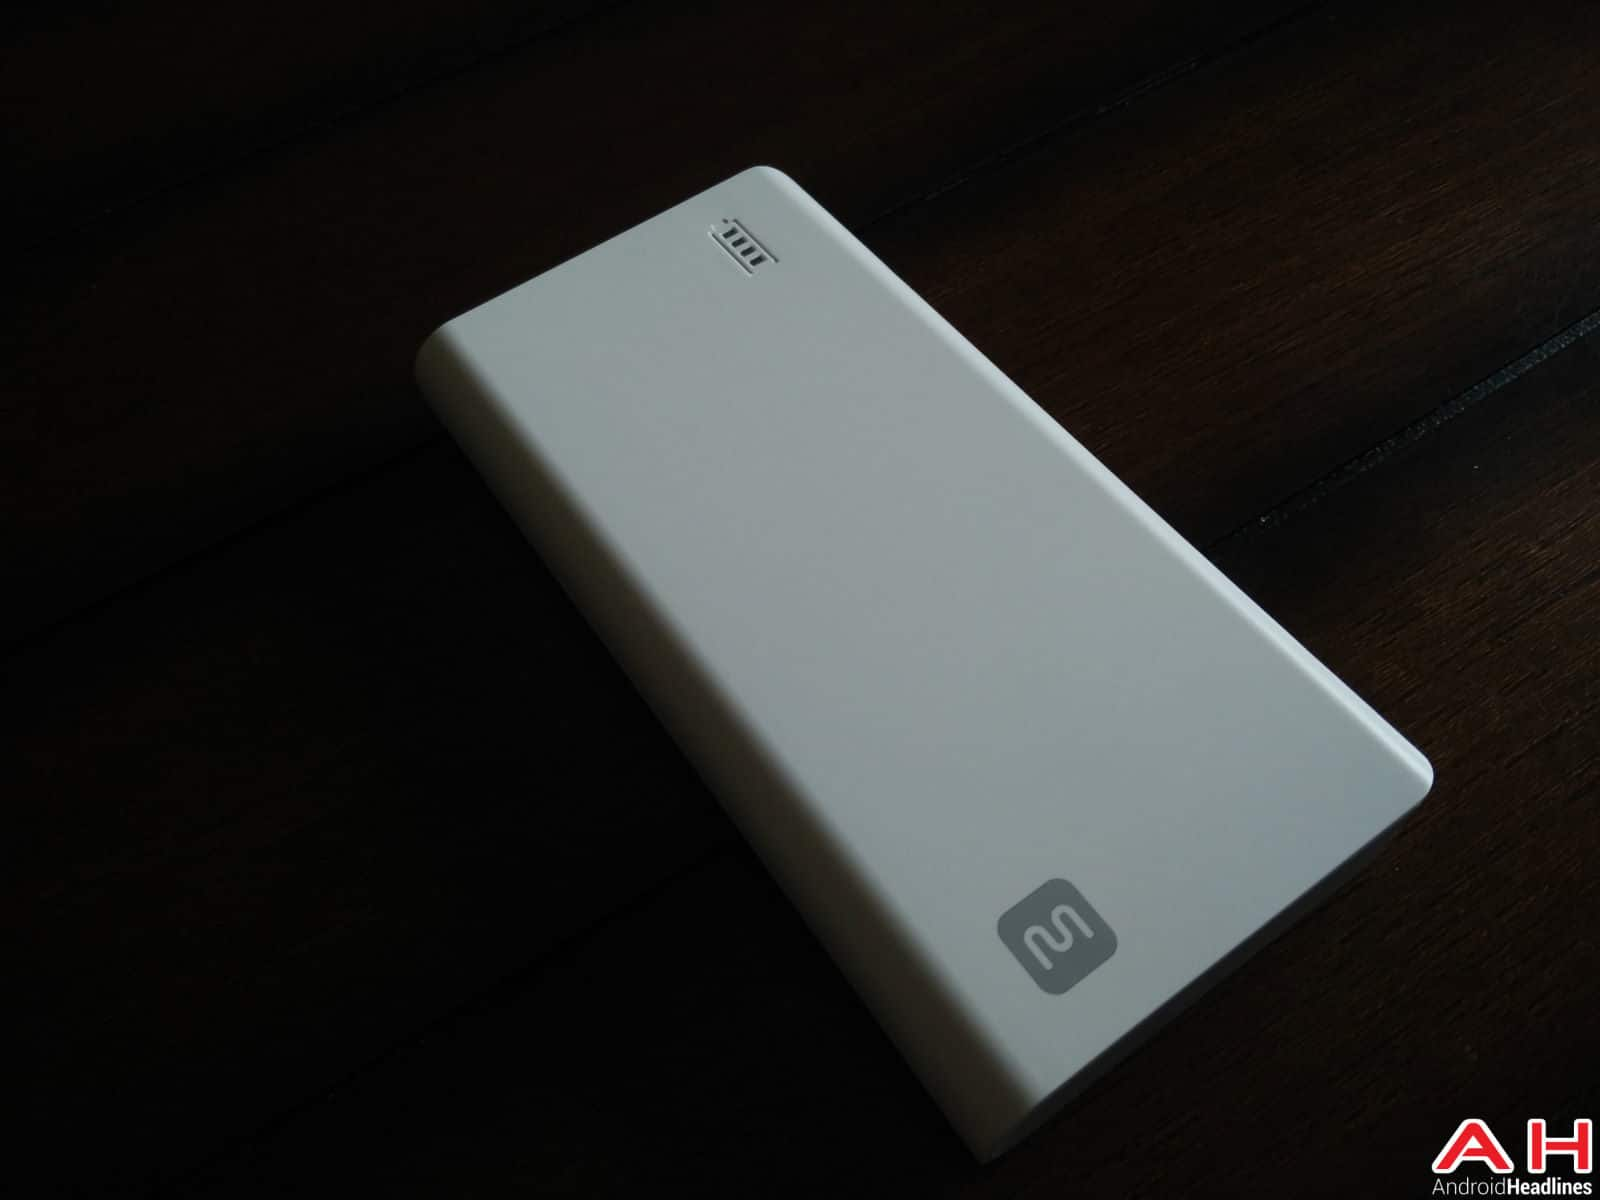 Monoprice Power Bank AH-2